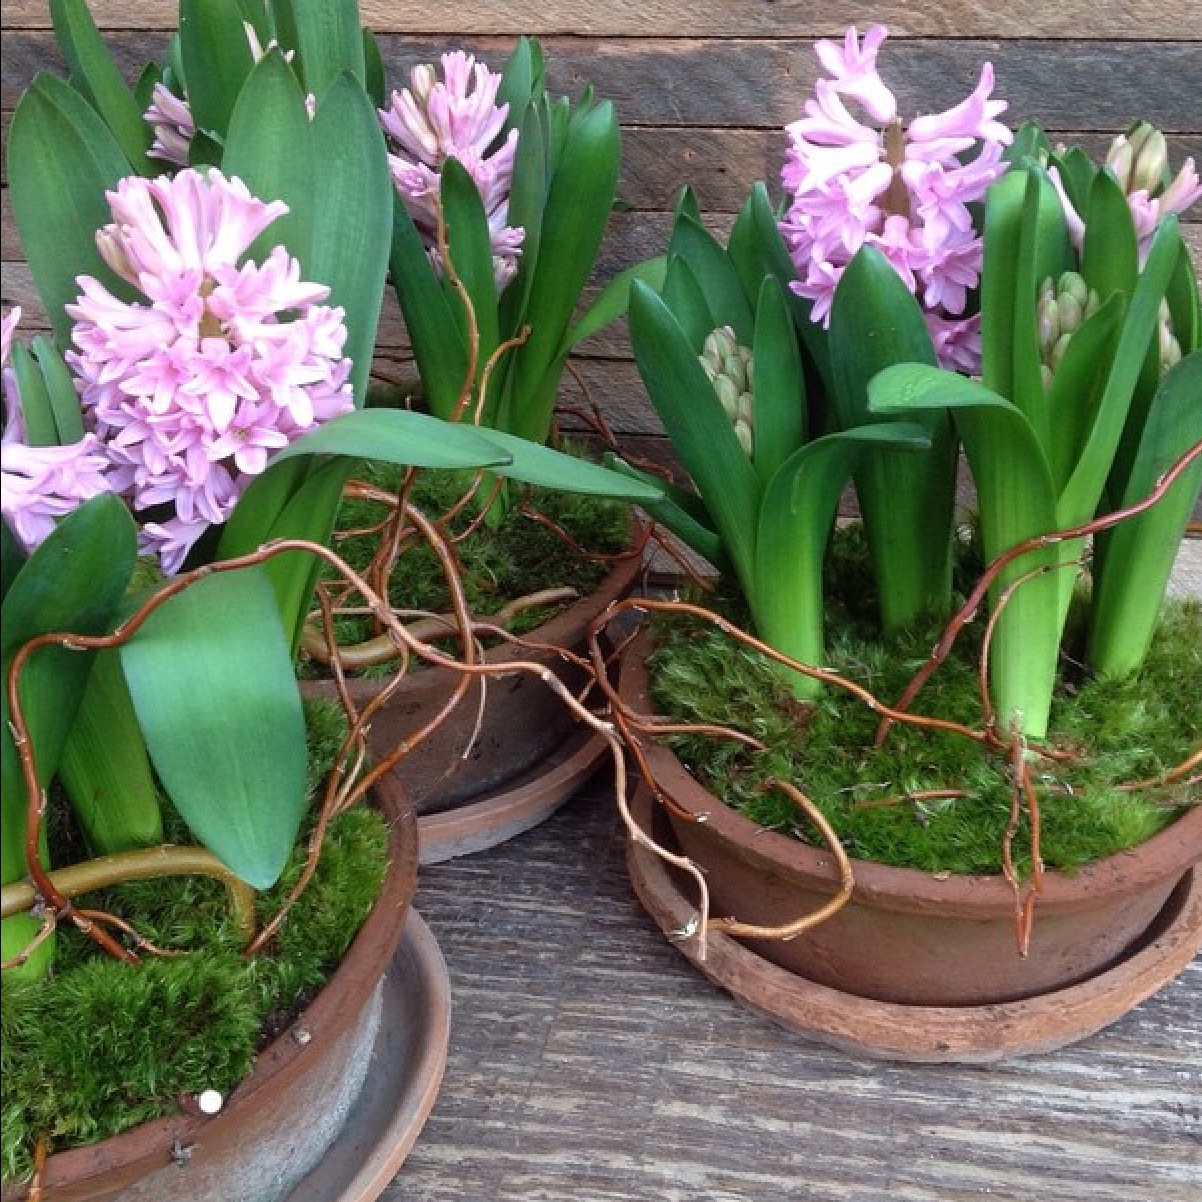 Planted Blooming Bulbs  long lasting and fragrant starting at $85